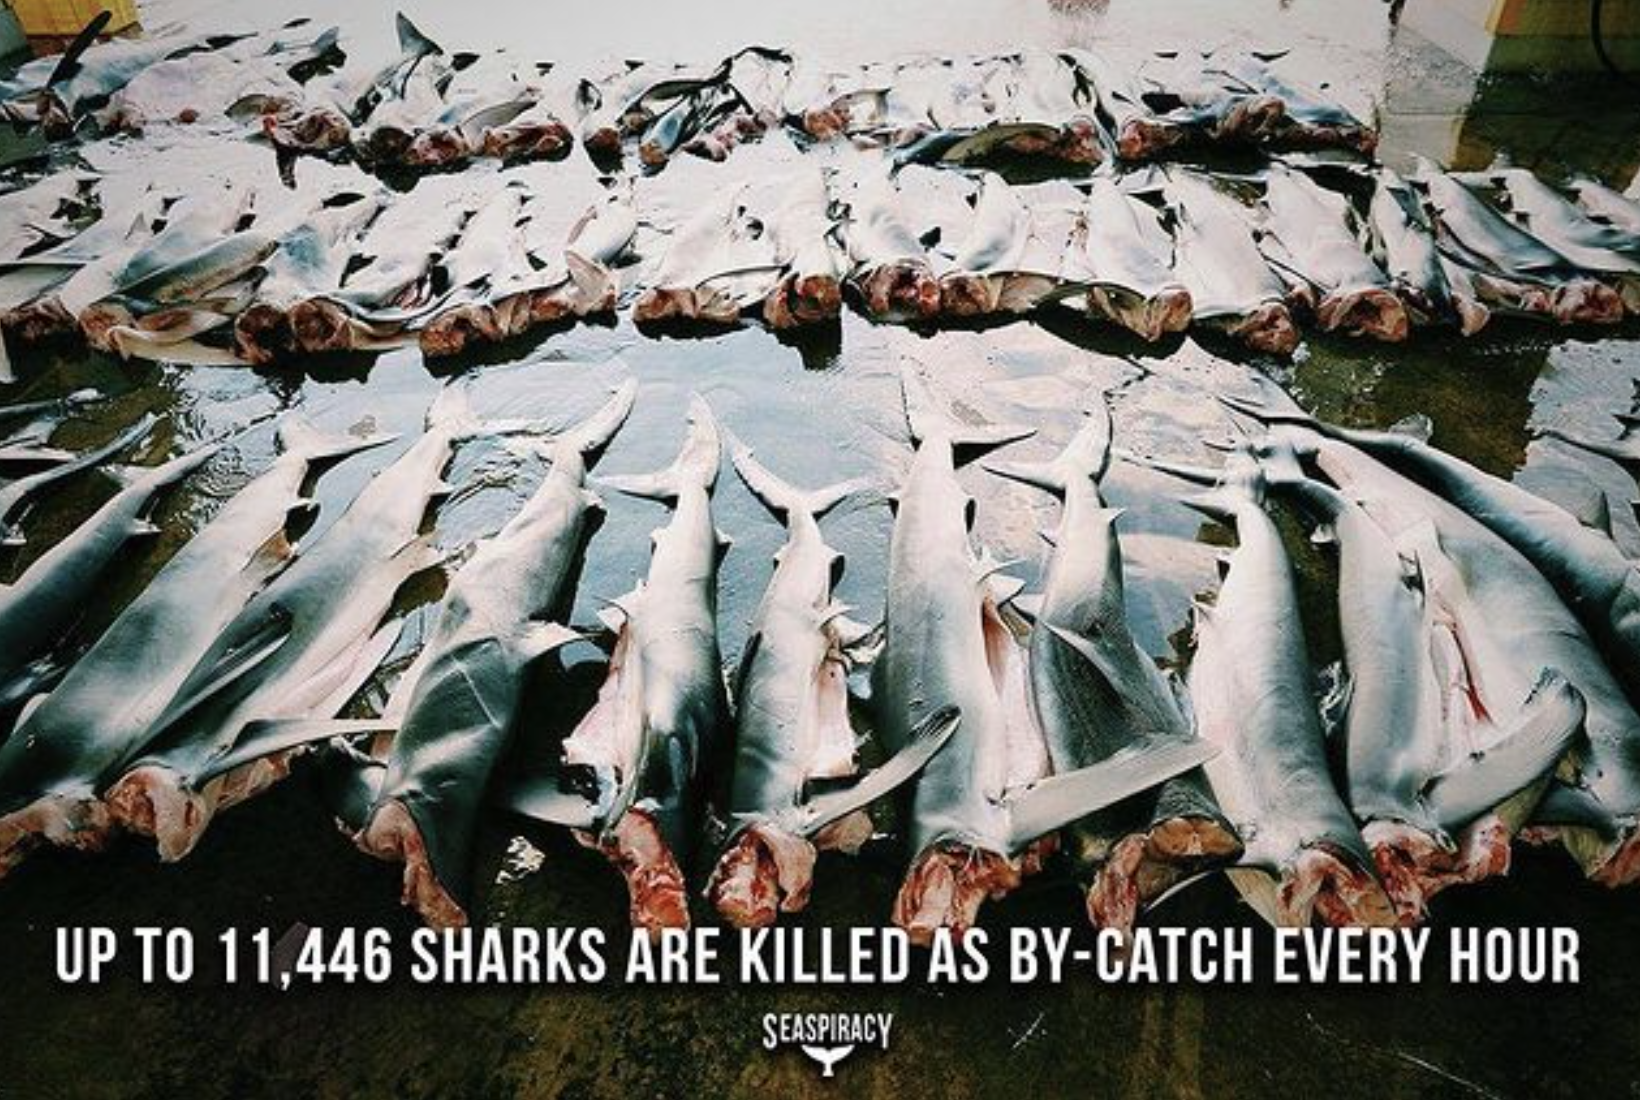 Seaspiracy, documentary movie, documentary film, Netflix, Netflix documentary, Cowspiracy, plant-based food, facts behind seafood, fishery industry, fishing industry, animal cruelty, unsustainable practice, shark killing, plastic waste, marine life, biodiversity, Ali Tarbrizi, fish market, shocking fact about fishing industry, modern slavery, climate change, sustainability issue, meatless, Blue Planet, Blue Planet Live, George Monbiot, food shortage, Eleven Madison Park